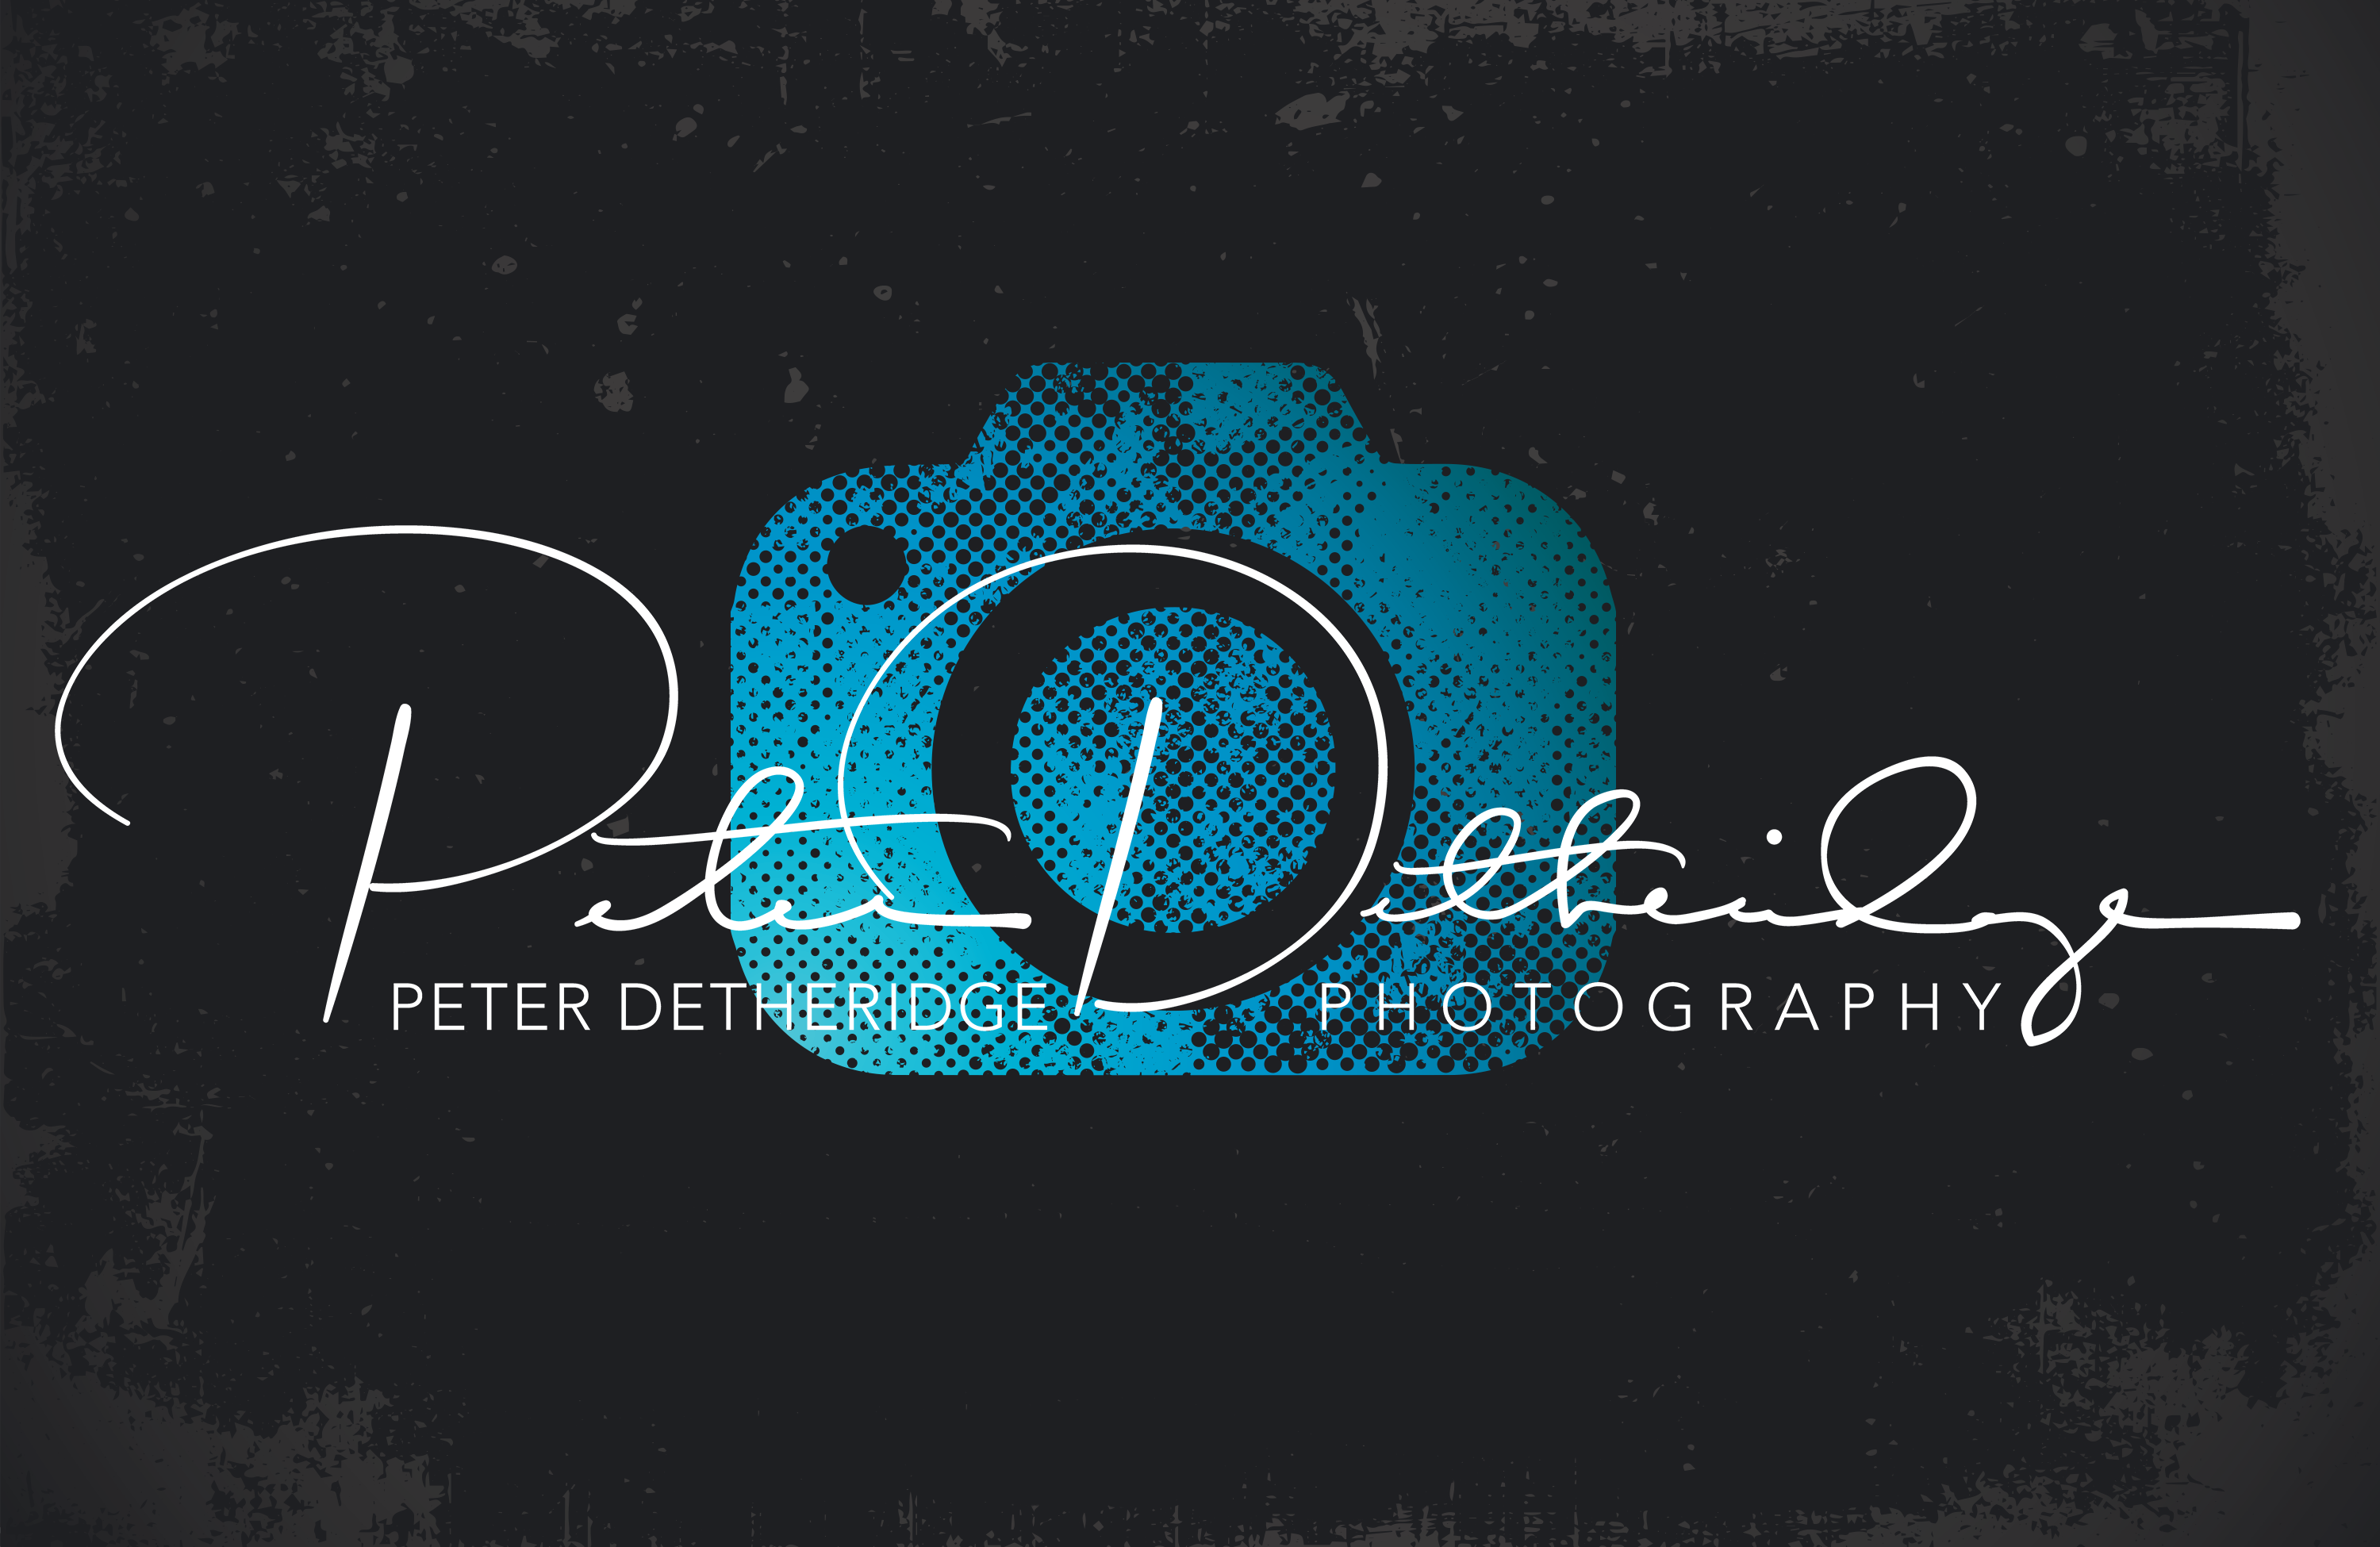 Peter Detheridge Photography